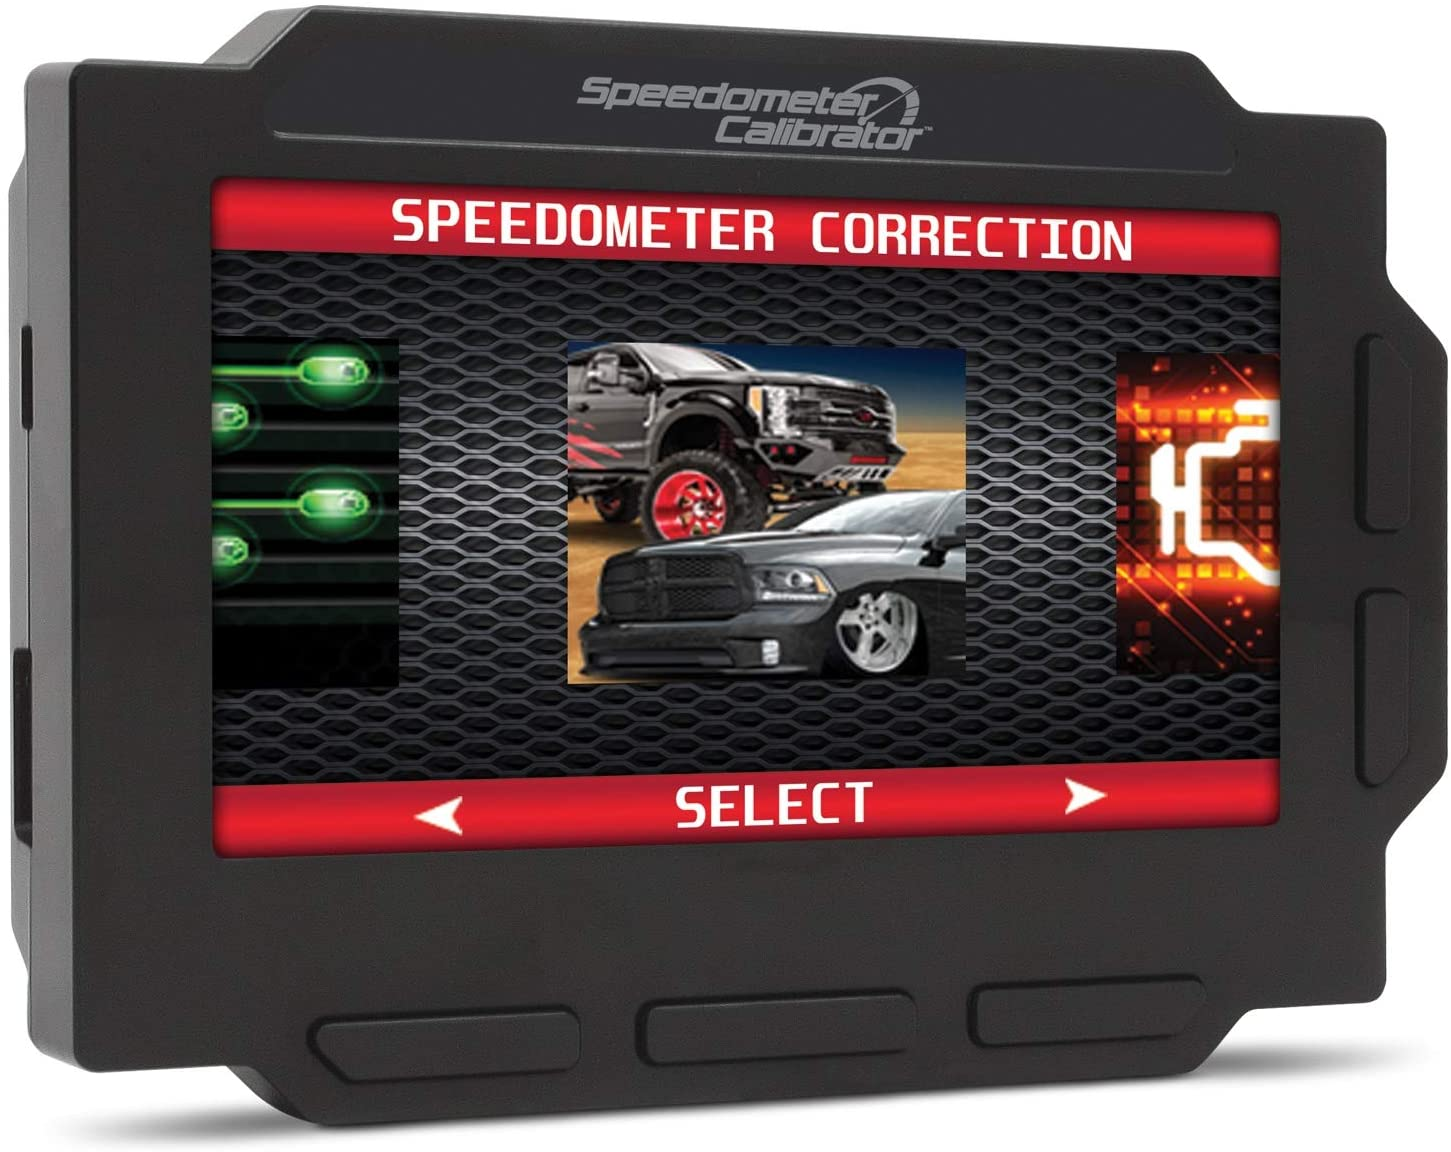 Hypertech 3300 Direct sale of manufacturer Speedometer Calibrator Popular popular with Color Screen